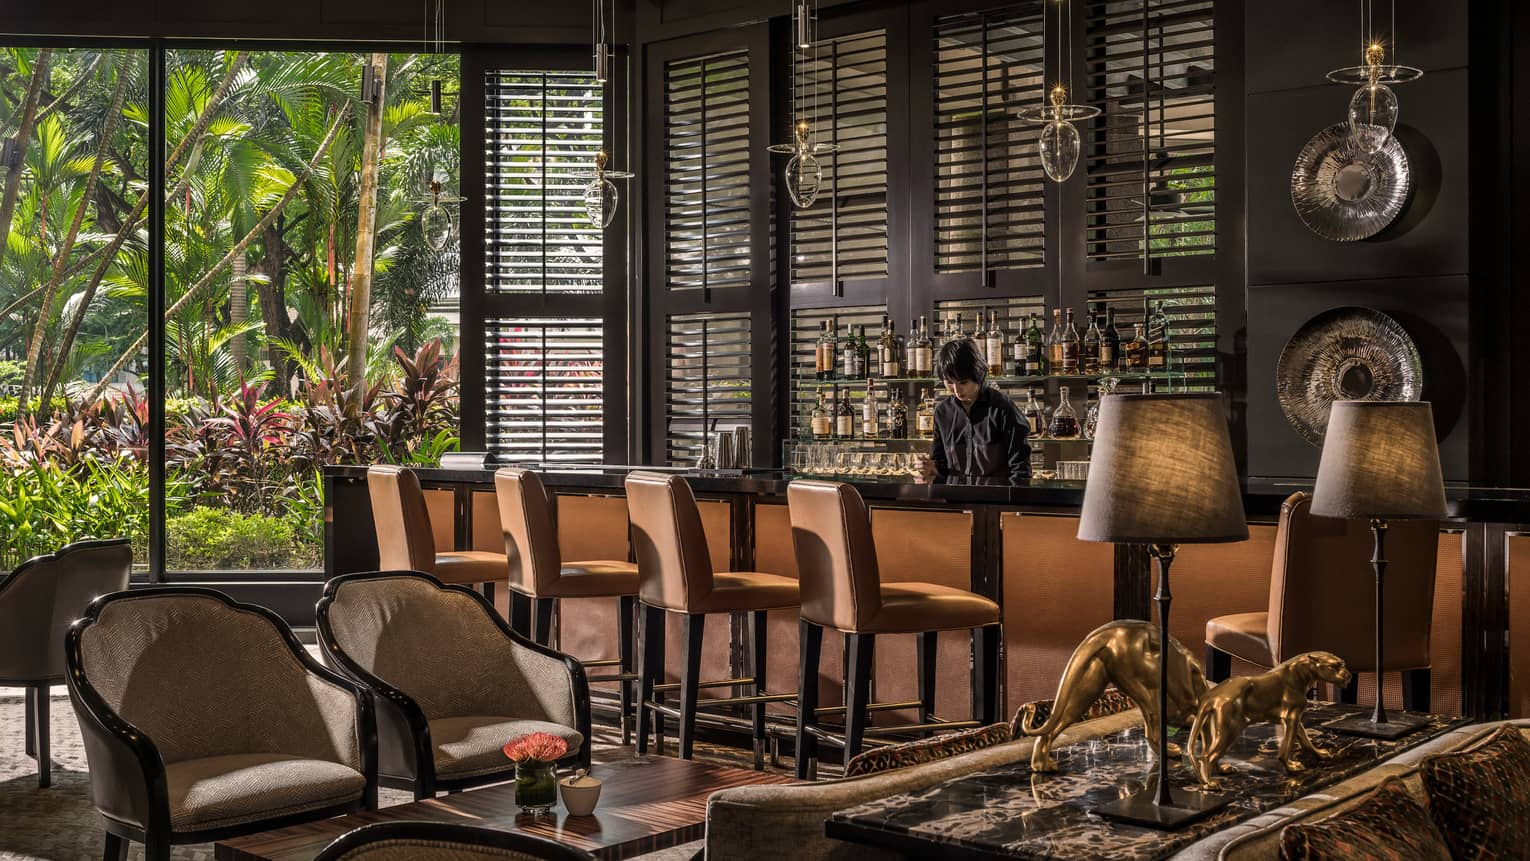 Bartender behind bar next to wood shutters, floor-to-ceiling windows, dining room